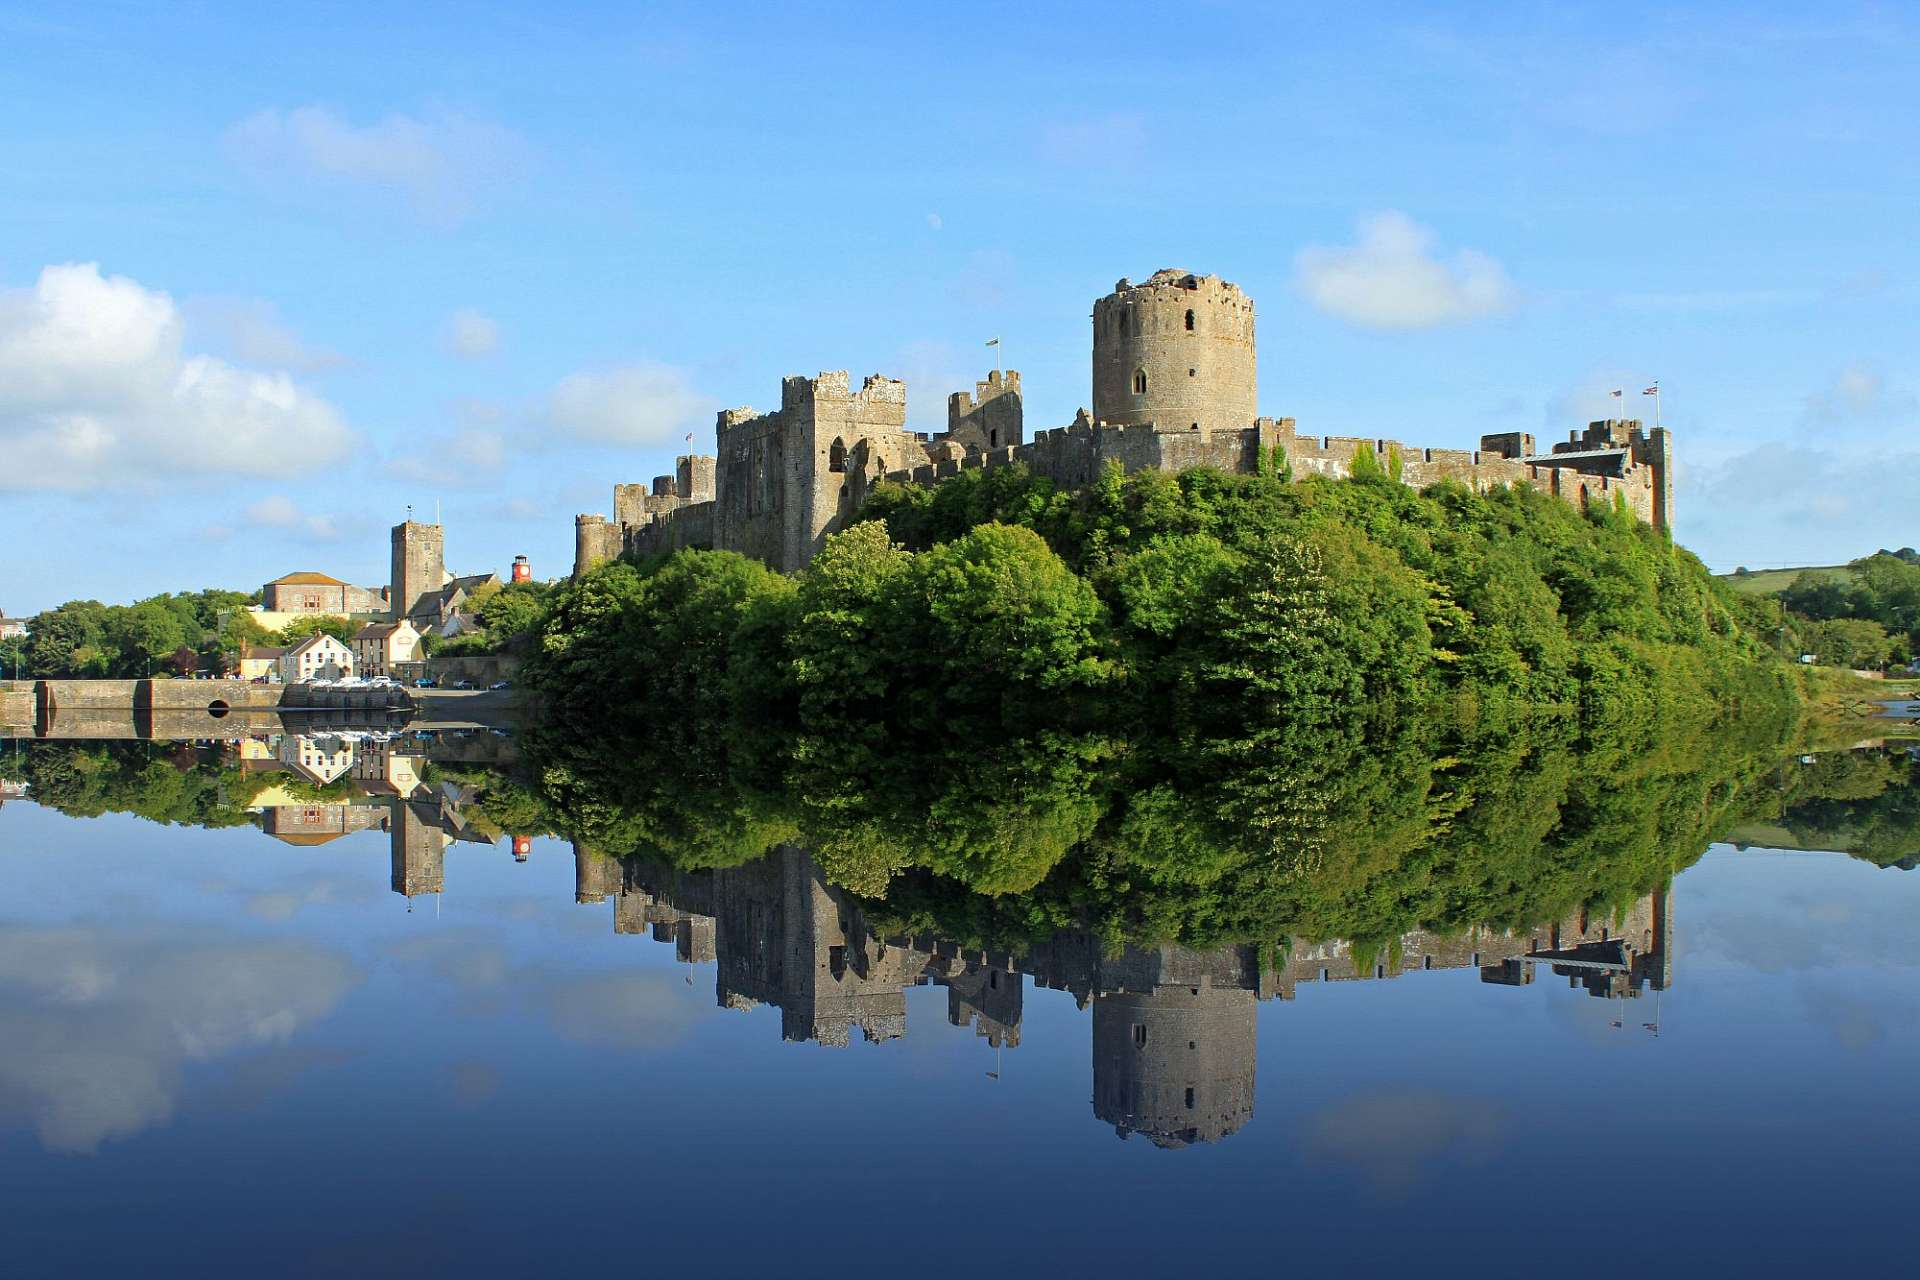 Norman castles in an idyllic setting: Pembrokeshire